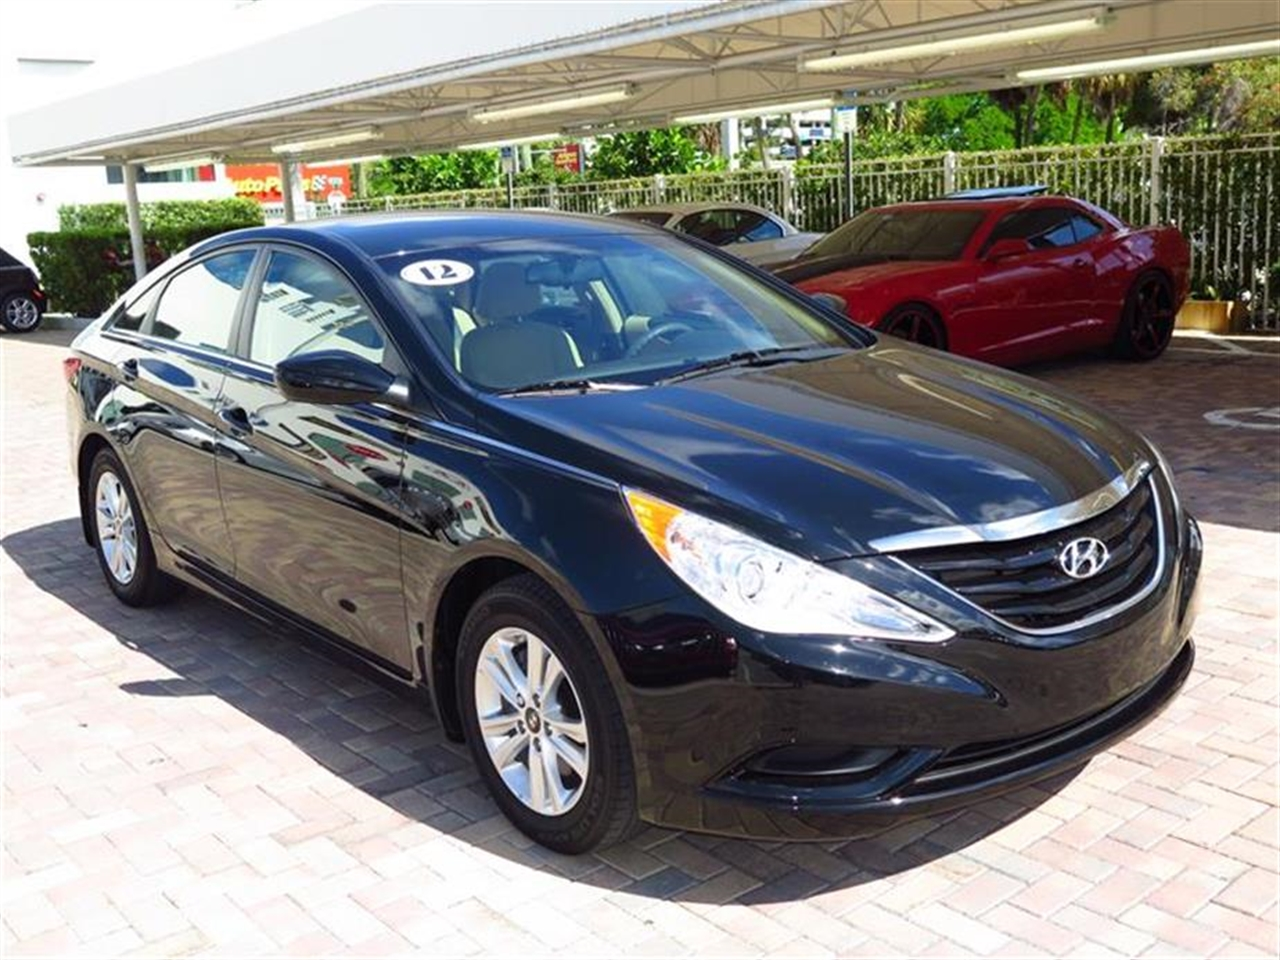 2012 HYUNDAI SONATA 4dr Sdn 24L Auto GLS 16713 miles 2 center console mounted 12-volt pwr outl